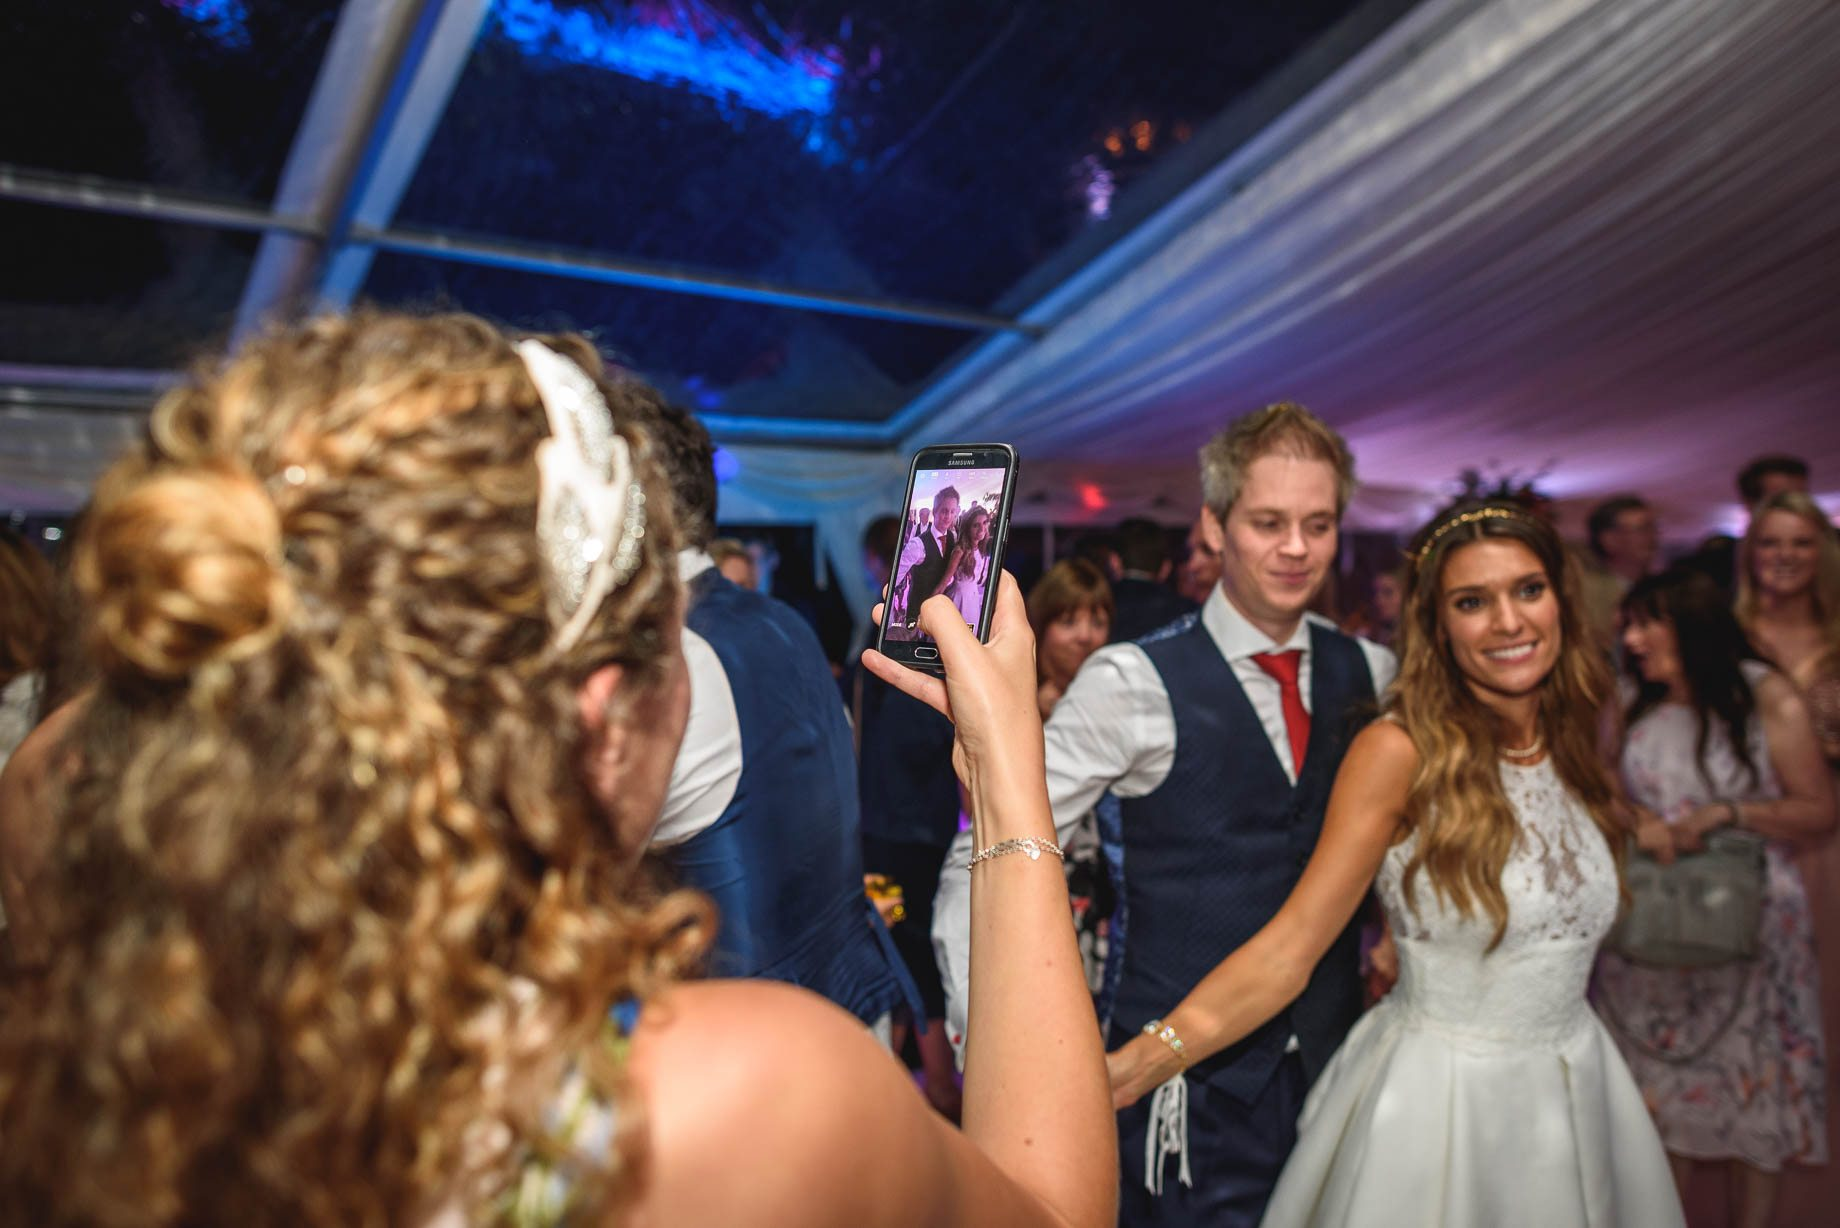 surrey-wedding-photography-guy-collier-photography-claire-and-tom-222-of-227